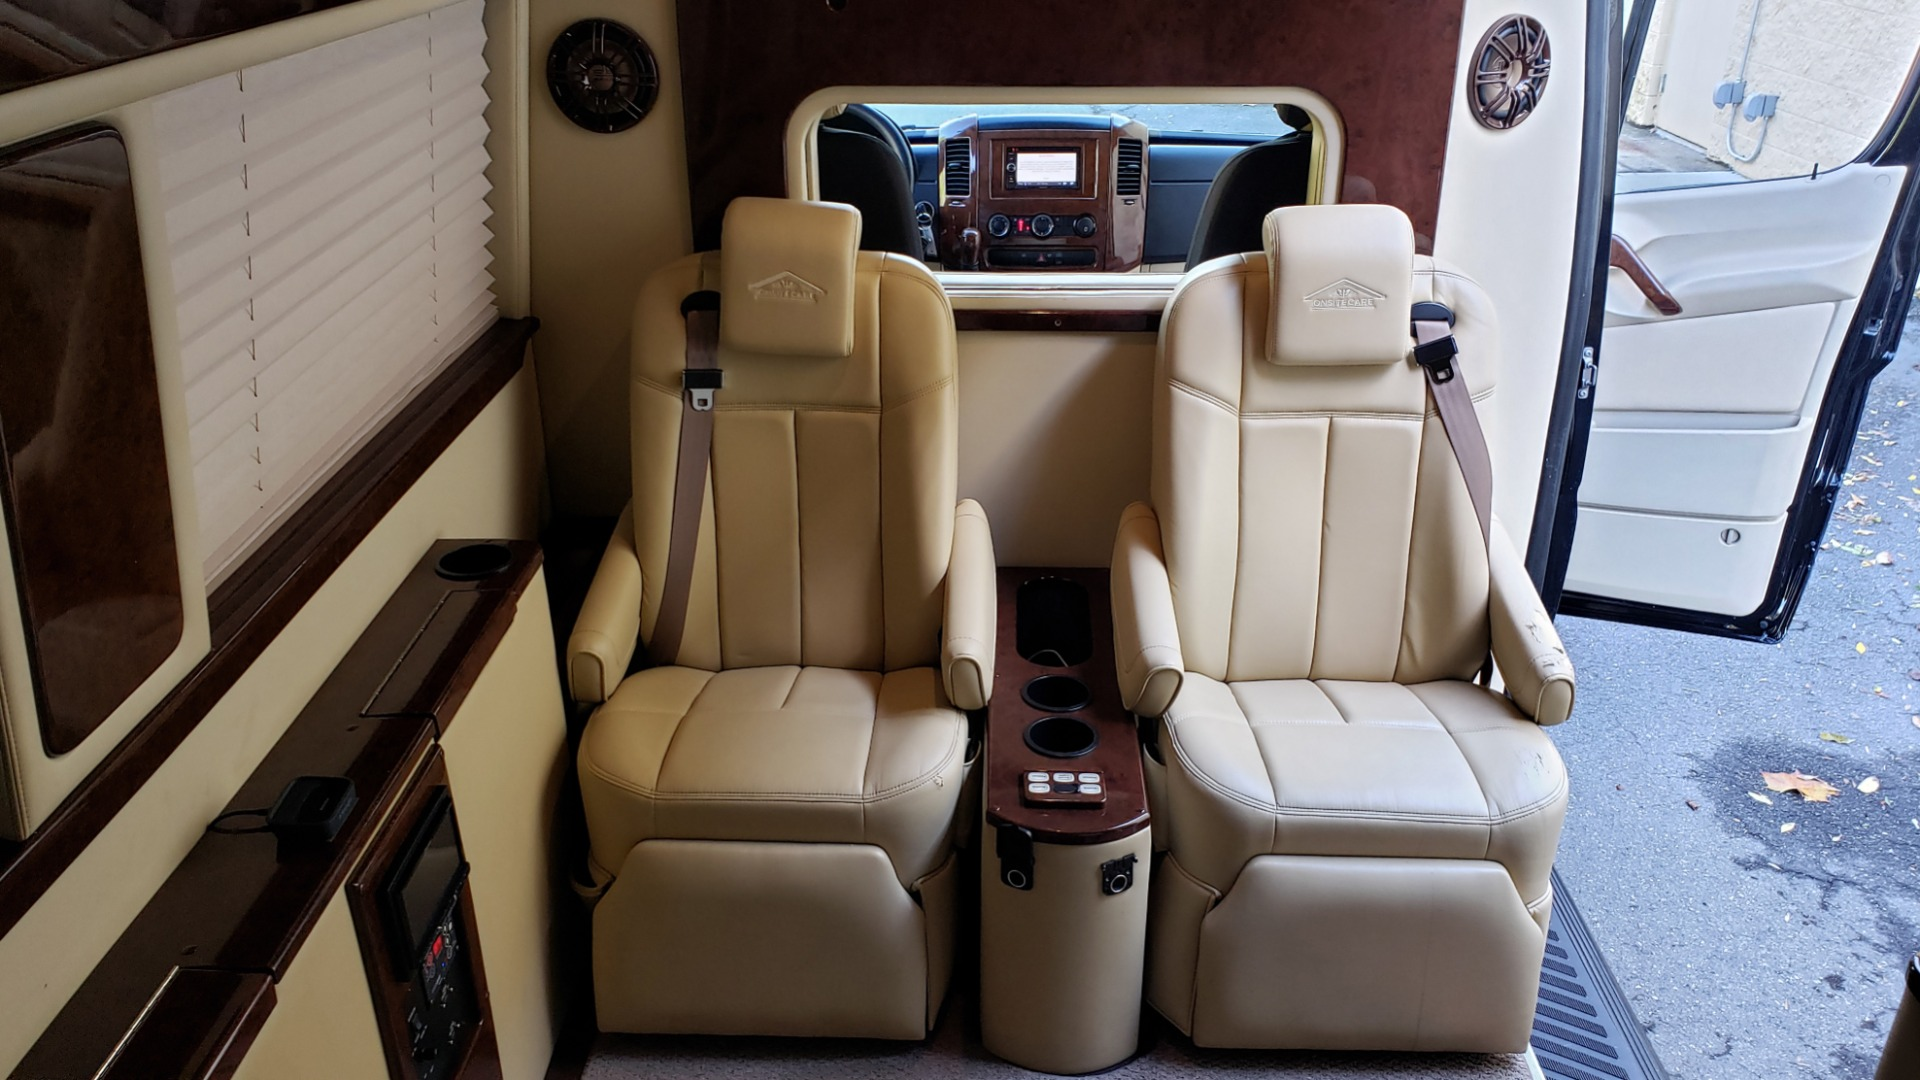 Used 2012 Mercedes-Benz SPRINTER CARGO VAN EXT / OFFICE ON WHEELS / FLT SCREEN TV / LOUNGE for sale Sold at Formula Imports in Charlotte NC 28227 56